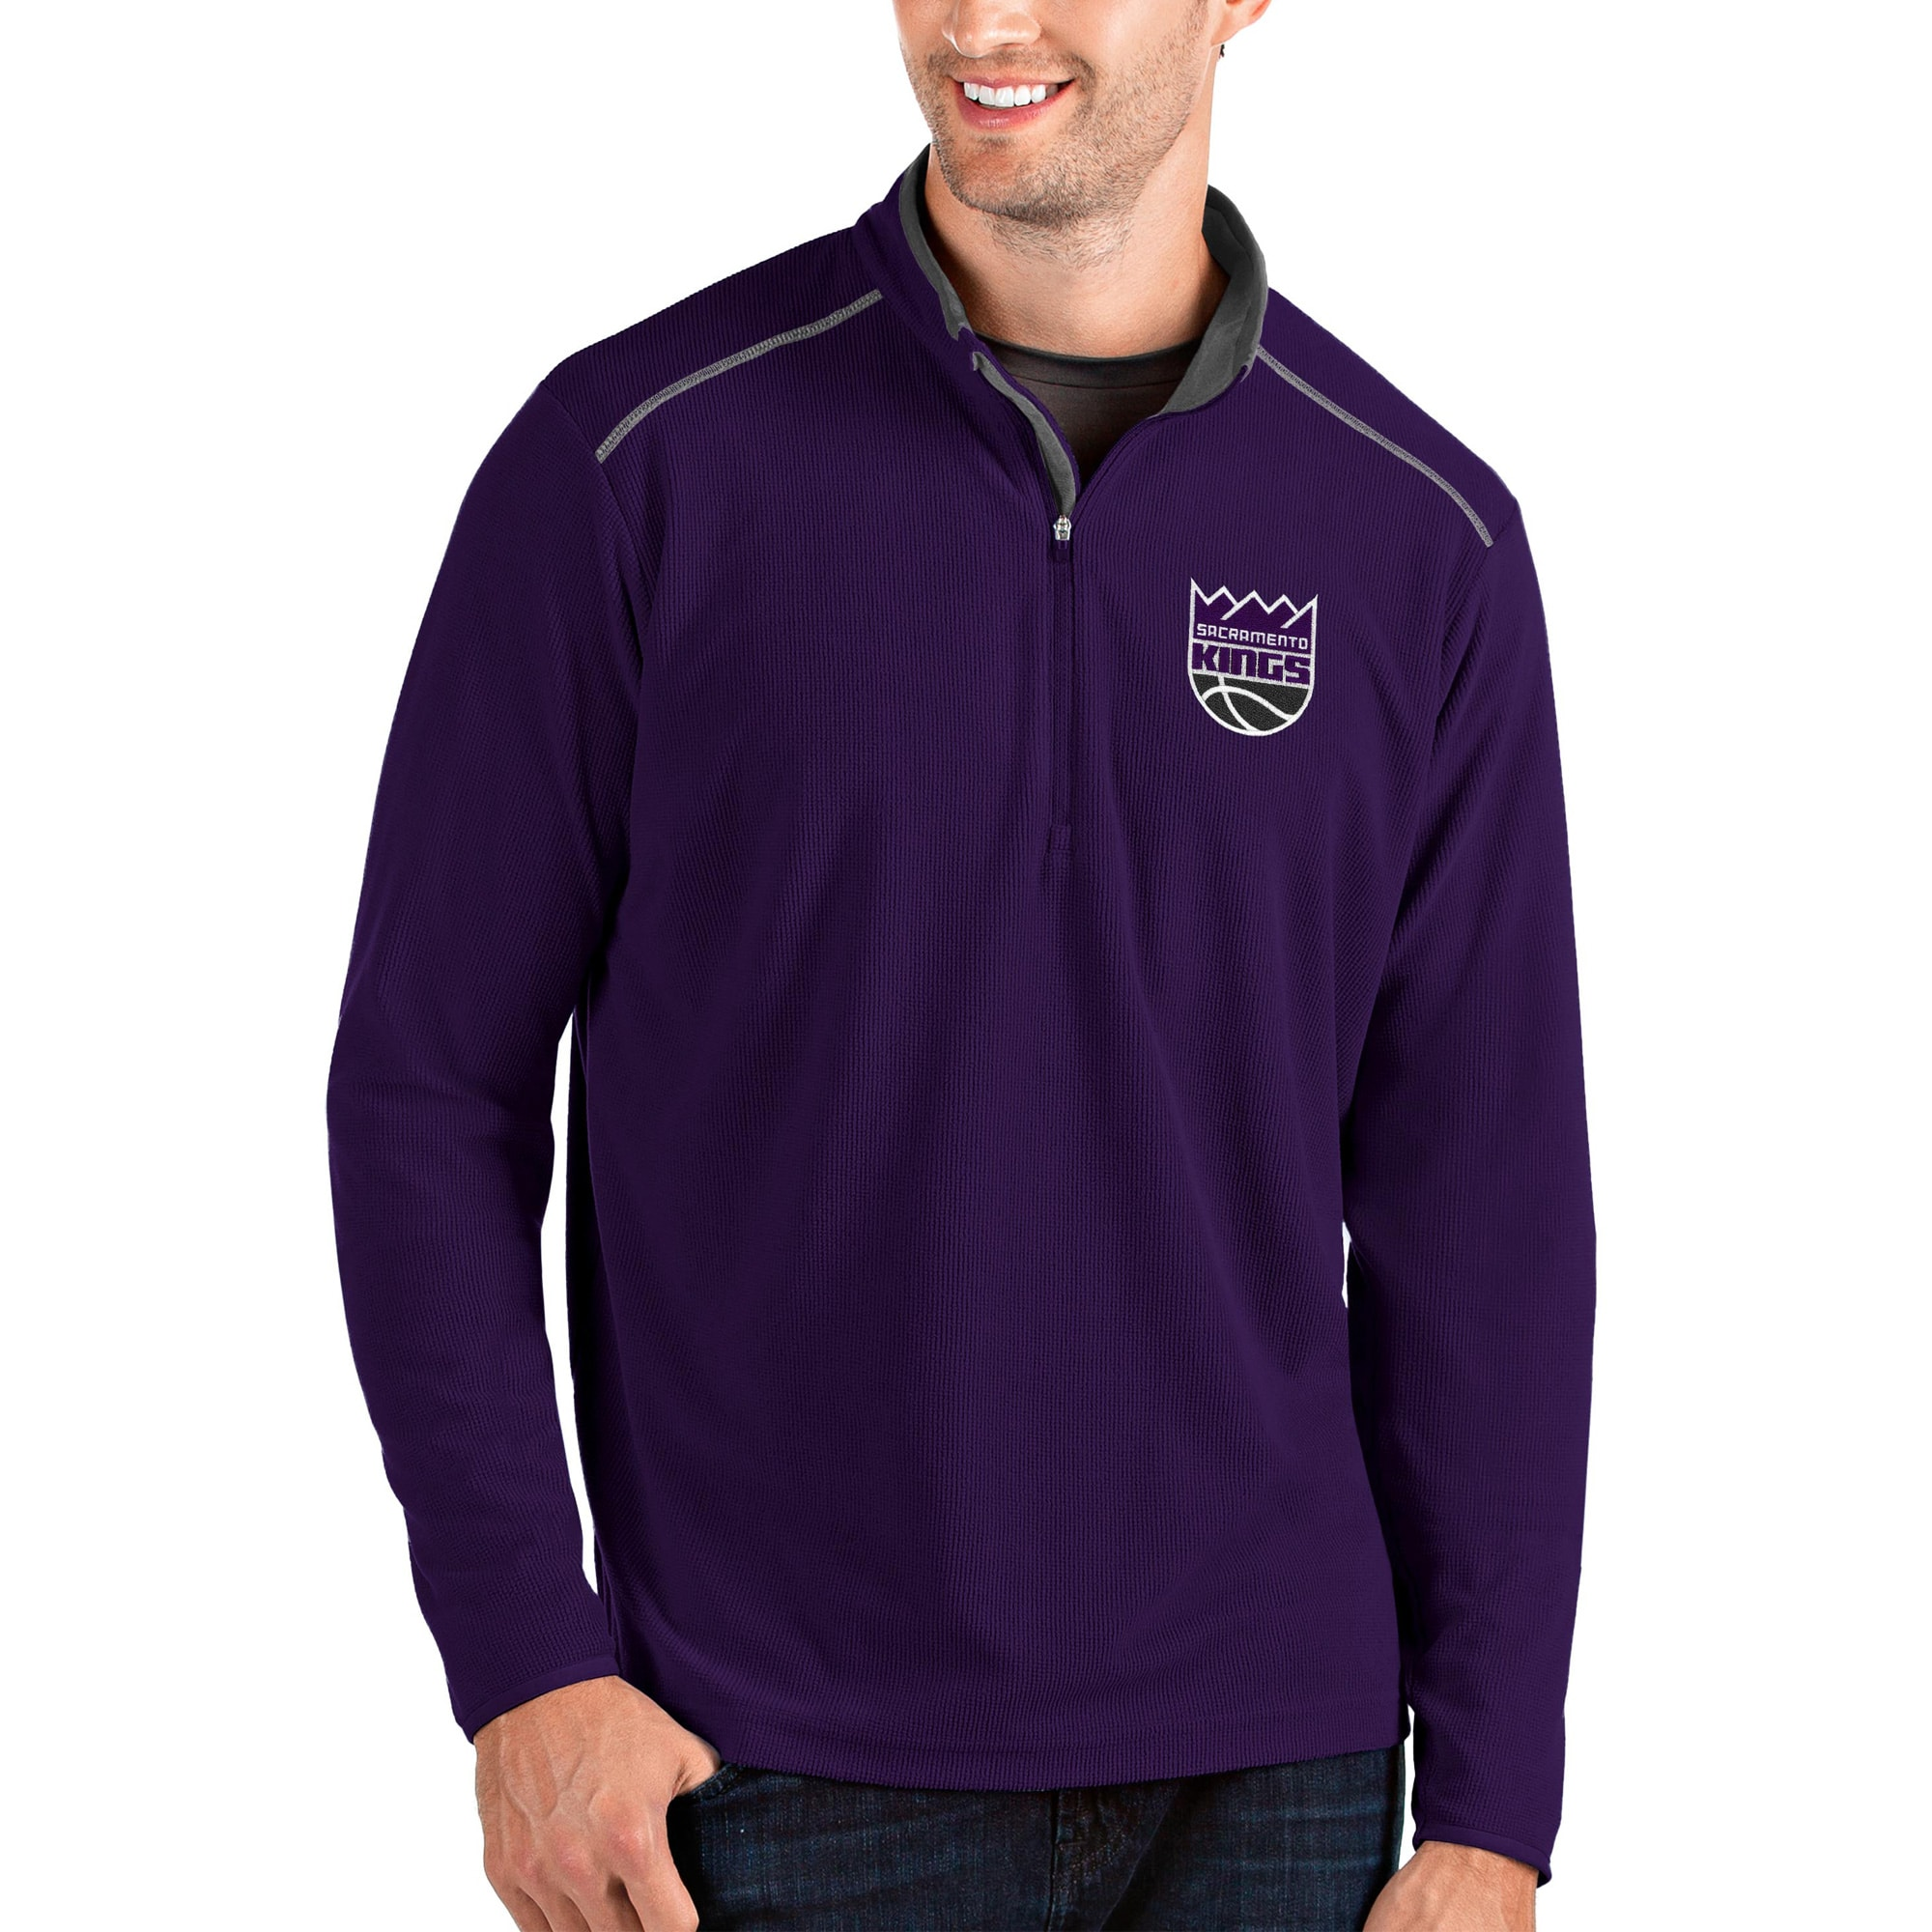 Sacramento Kings Antigua Glacier Quarter-Zip Pullover Jacket - Purple/Gray